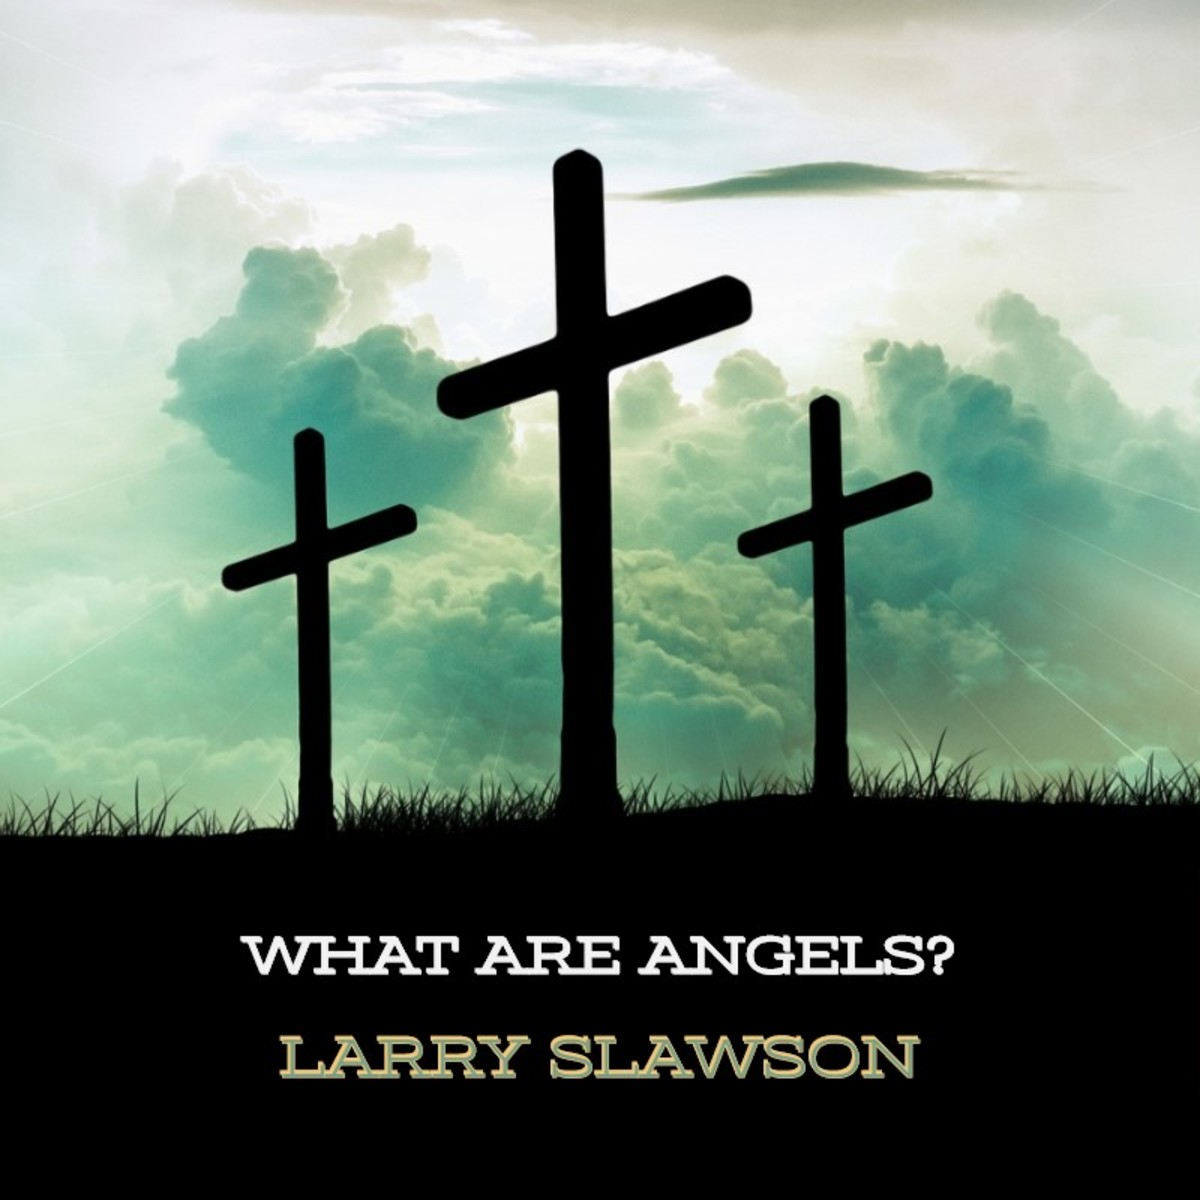 Are Angels fact or fiction?